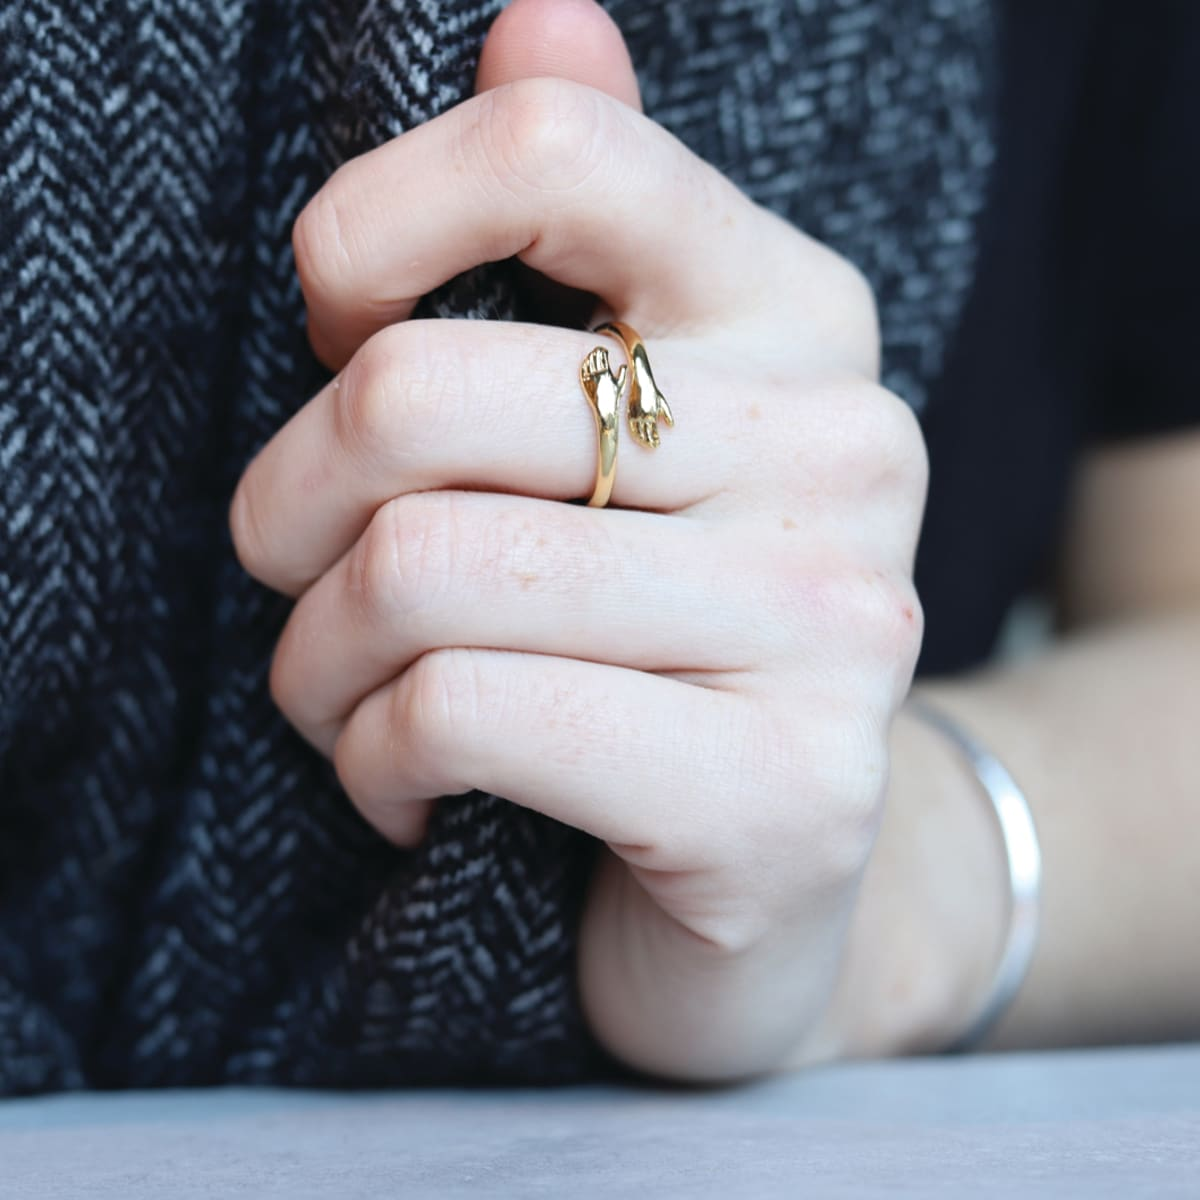 Hug Me Ring, colour gold, adjustable to make a comfortable fit from sizes C - Z, comes in an organza bag with a keepsake card